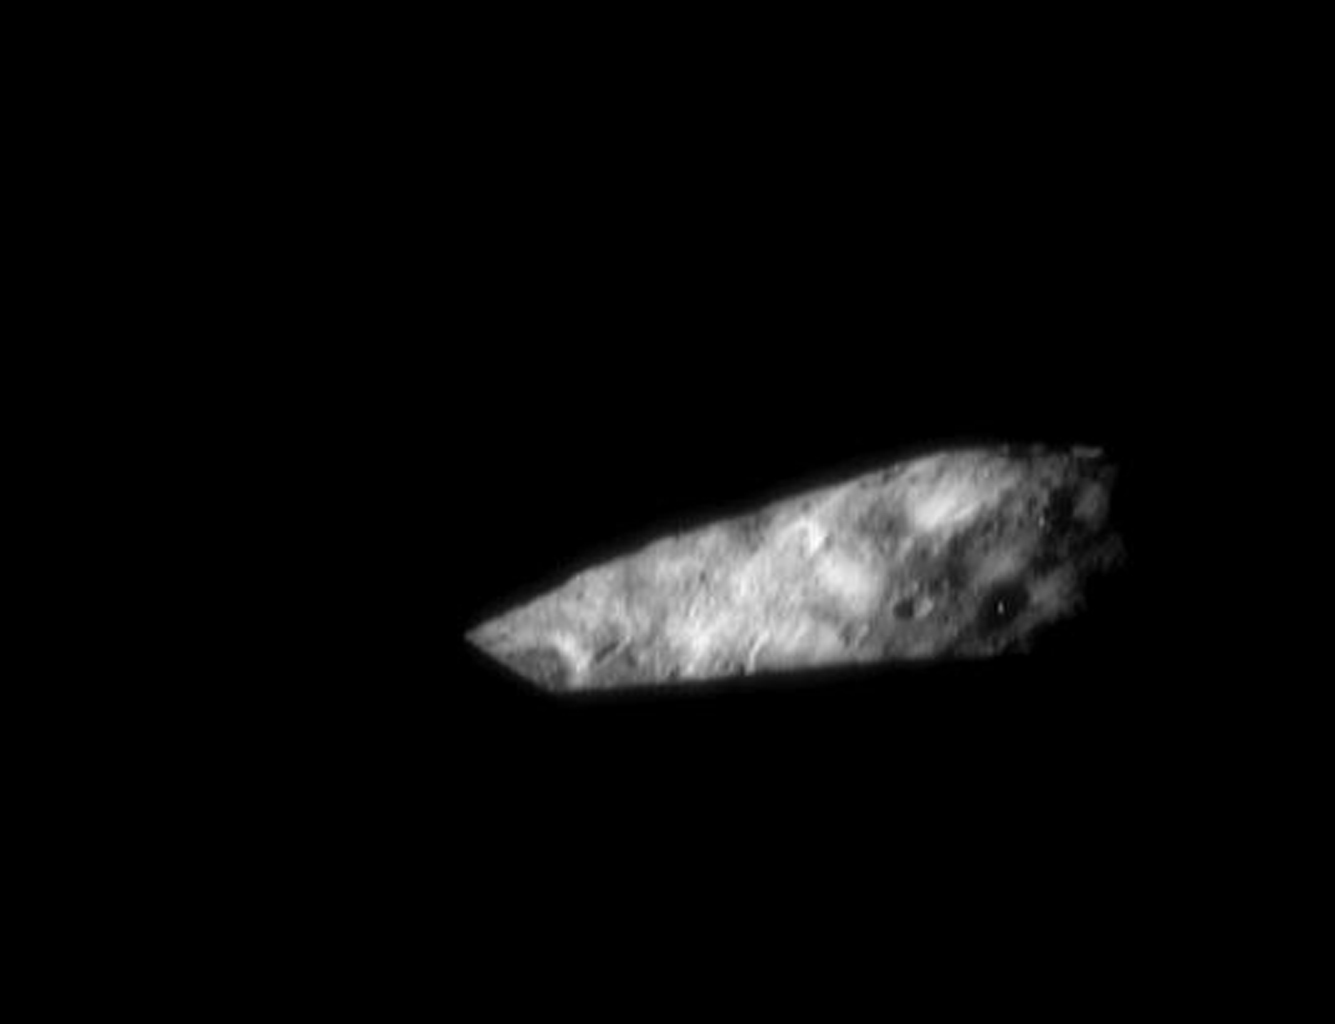 Asteroid Eros' irregular shape gives rise to some stunning vistas at the time of sunrise or sunset as seen in this image from NASA's NEAR Shoemaker.